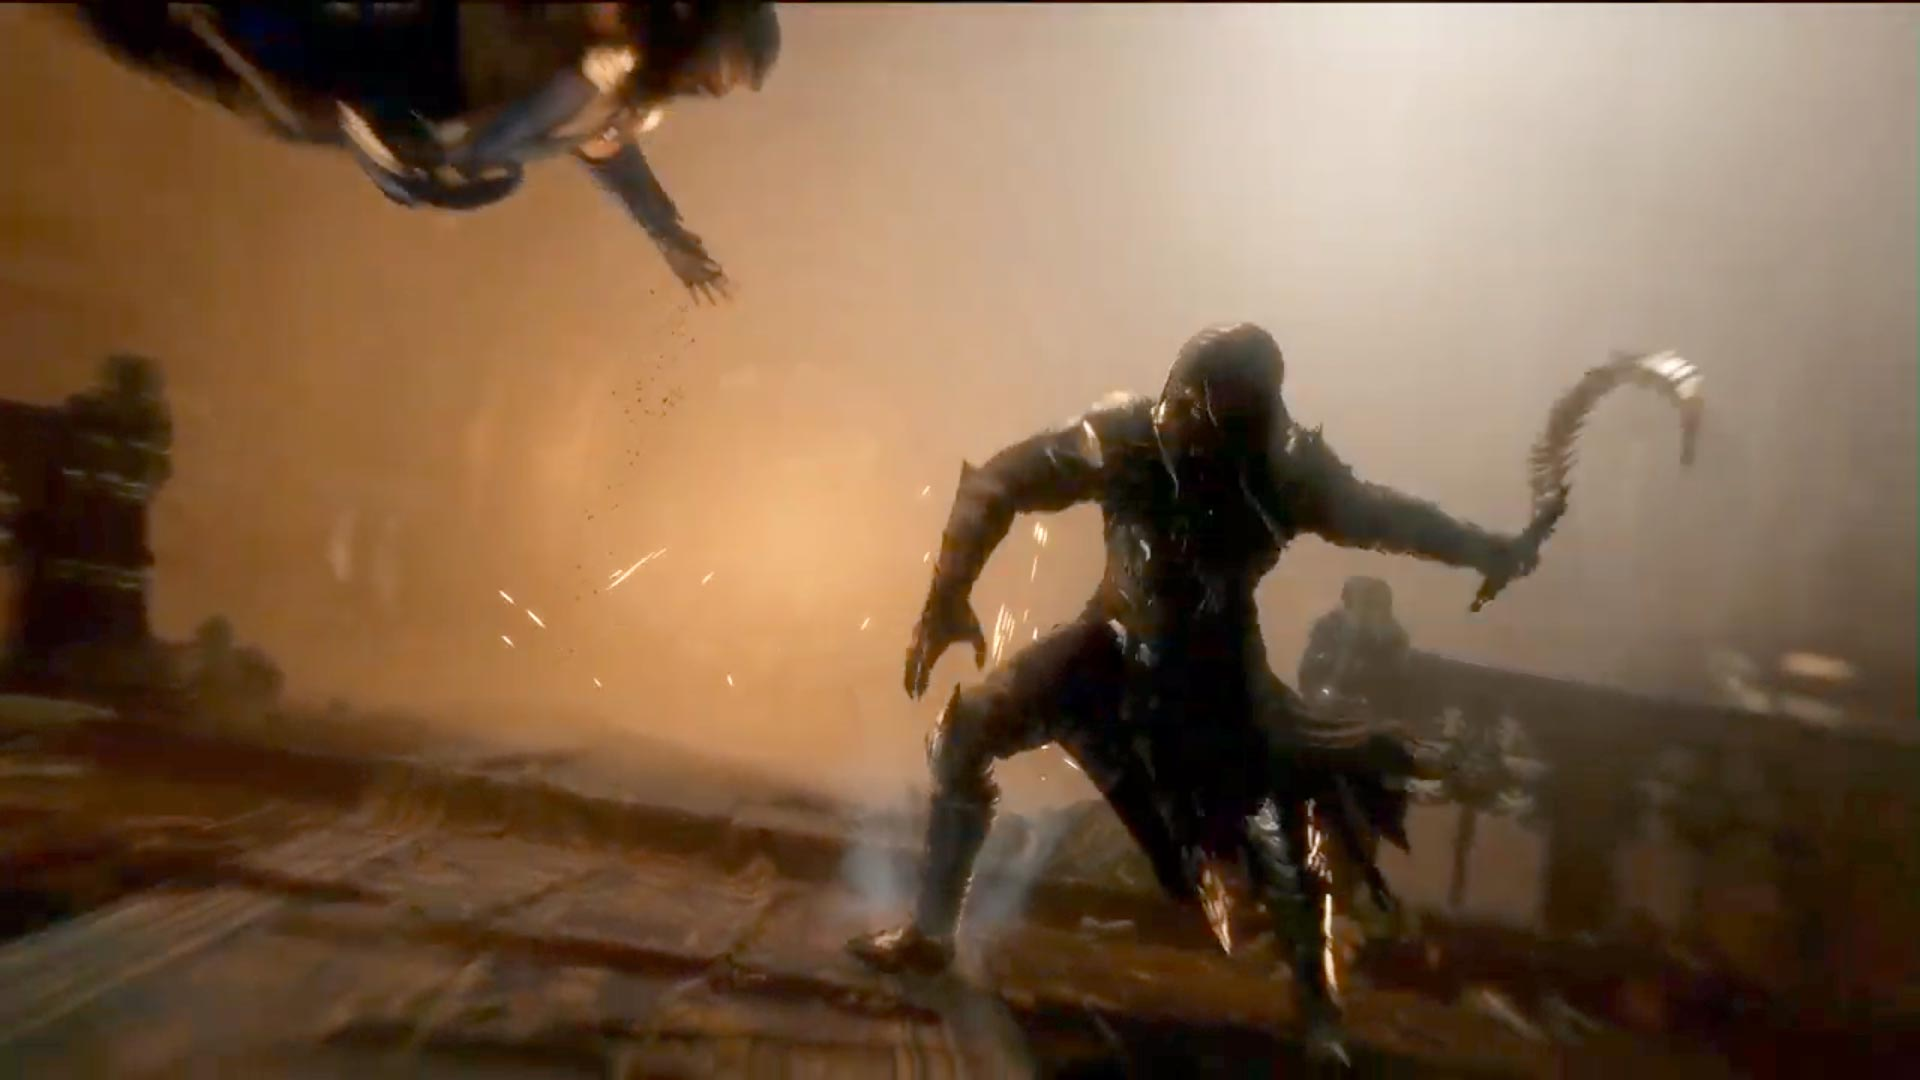 Noob Saibot character artwork in Mortal Kombat 11 6 out of 7 image gallery